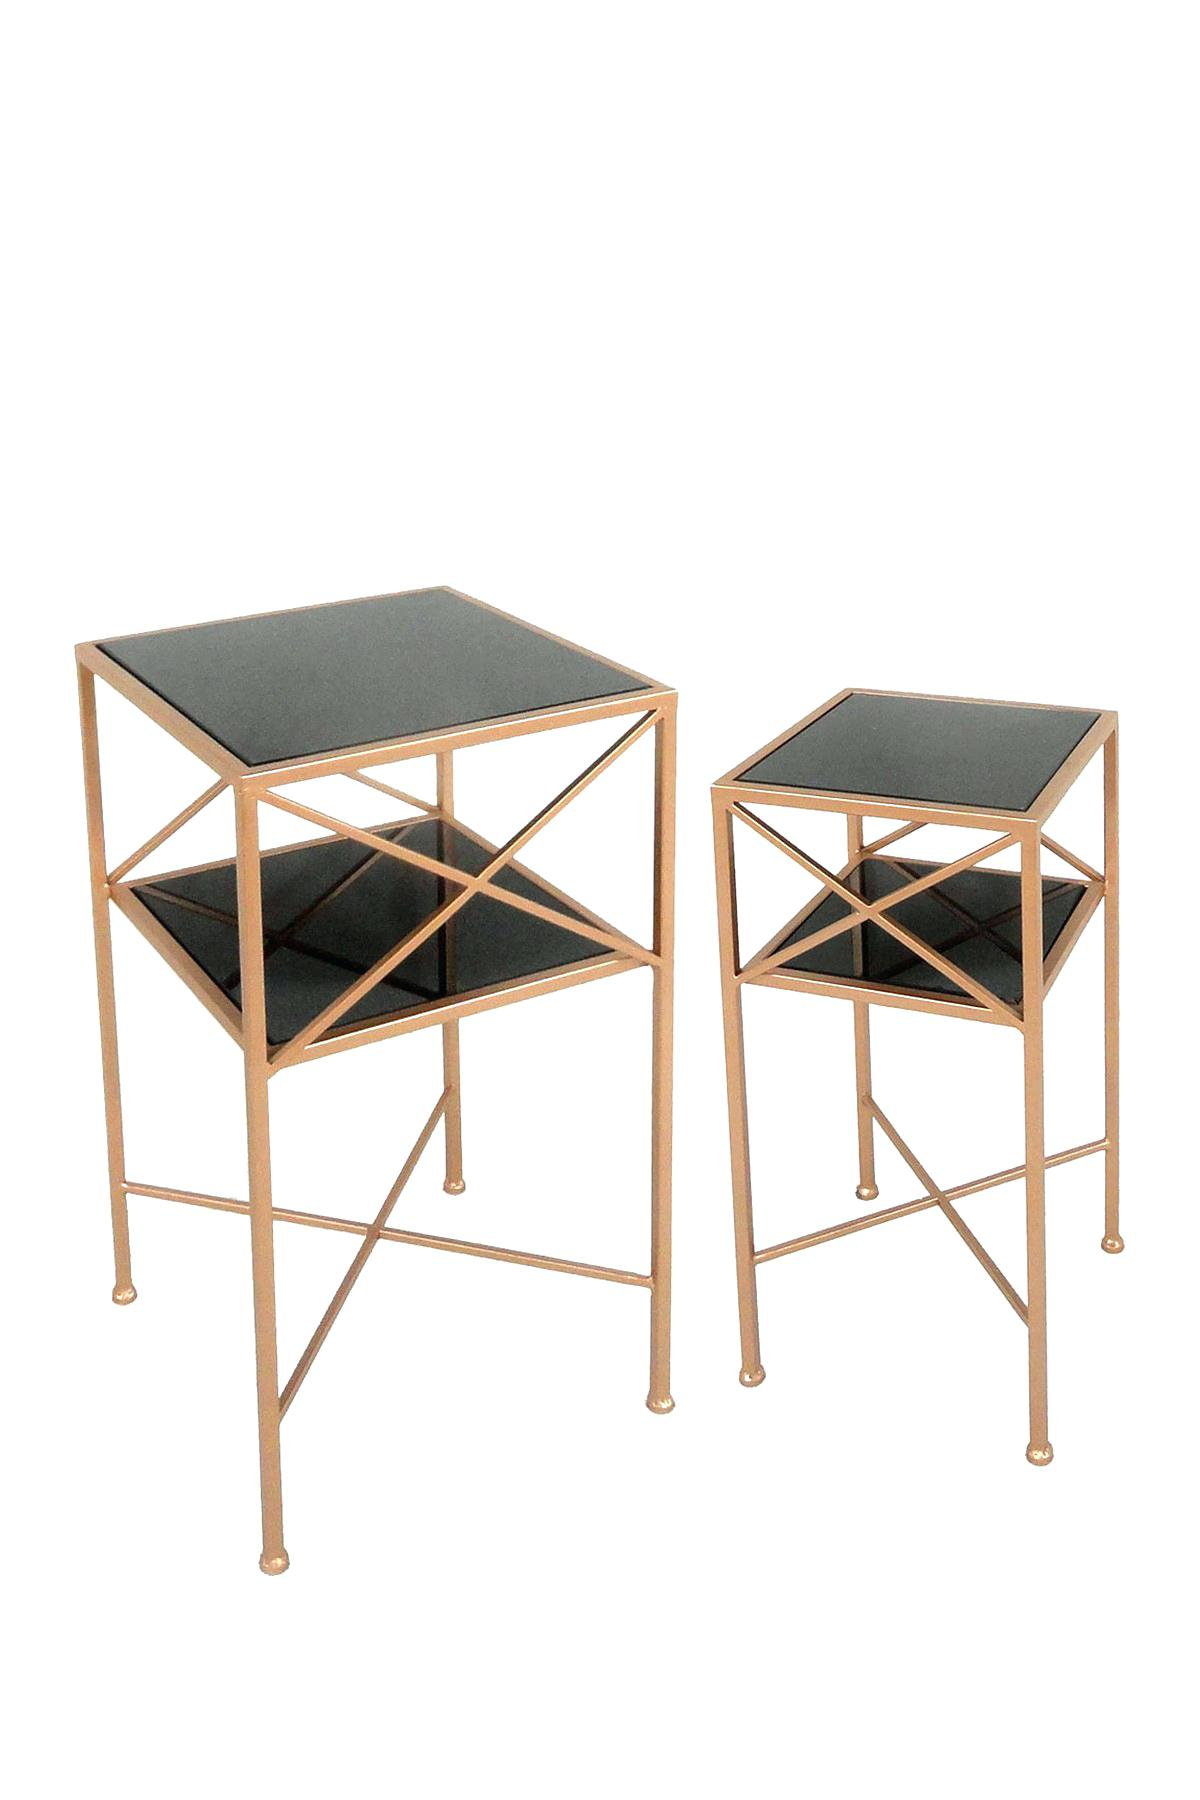 mirror accent table sjcgsc info home copper black metal tables set mirrored glass with drawer wood file cabinet mid century kitchen chairs electric humidor furniture board grey